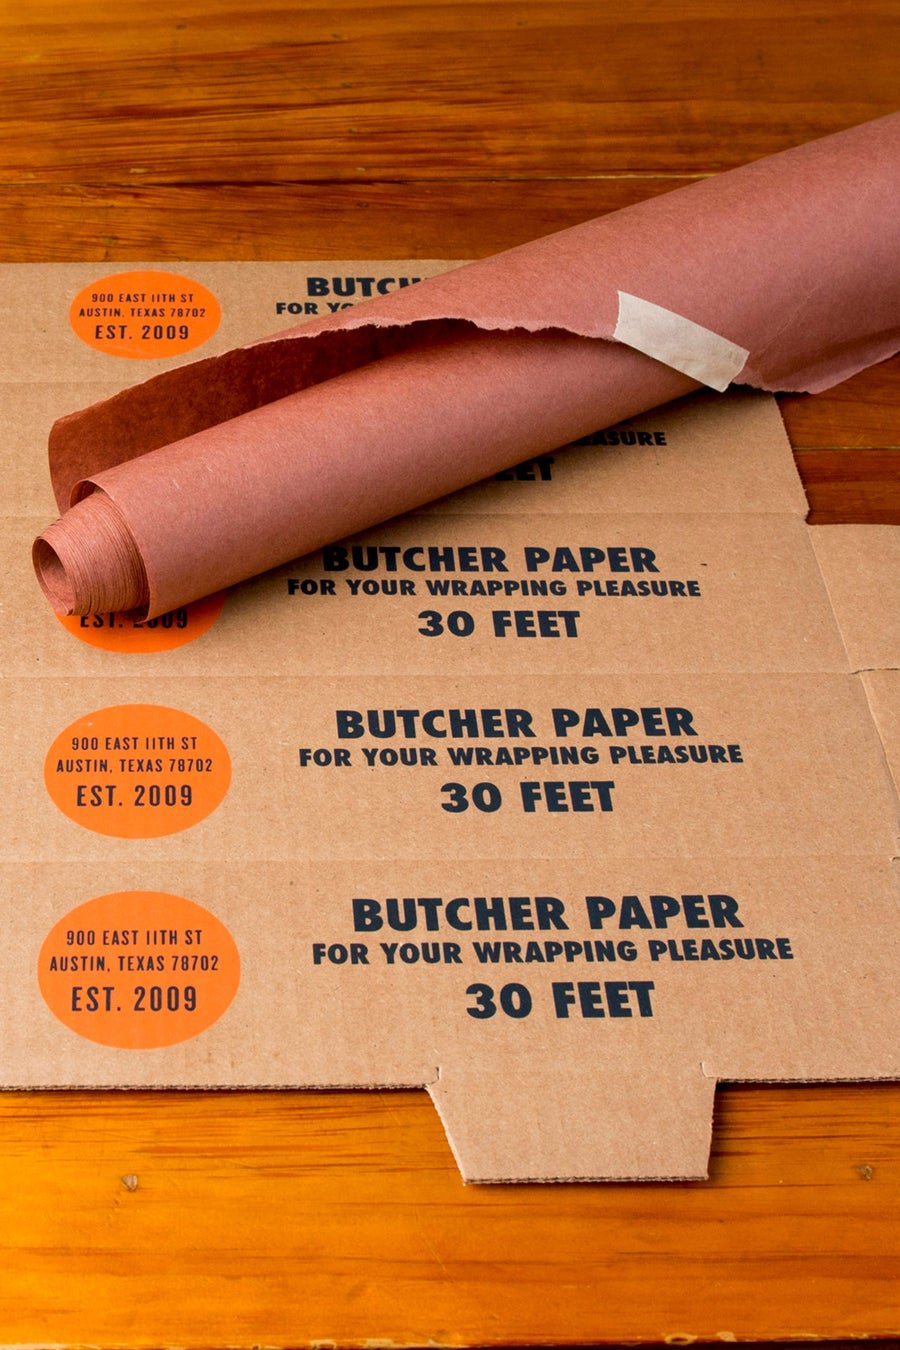 Image of Franklin Barbecue Butcher Paper